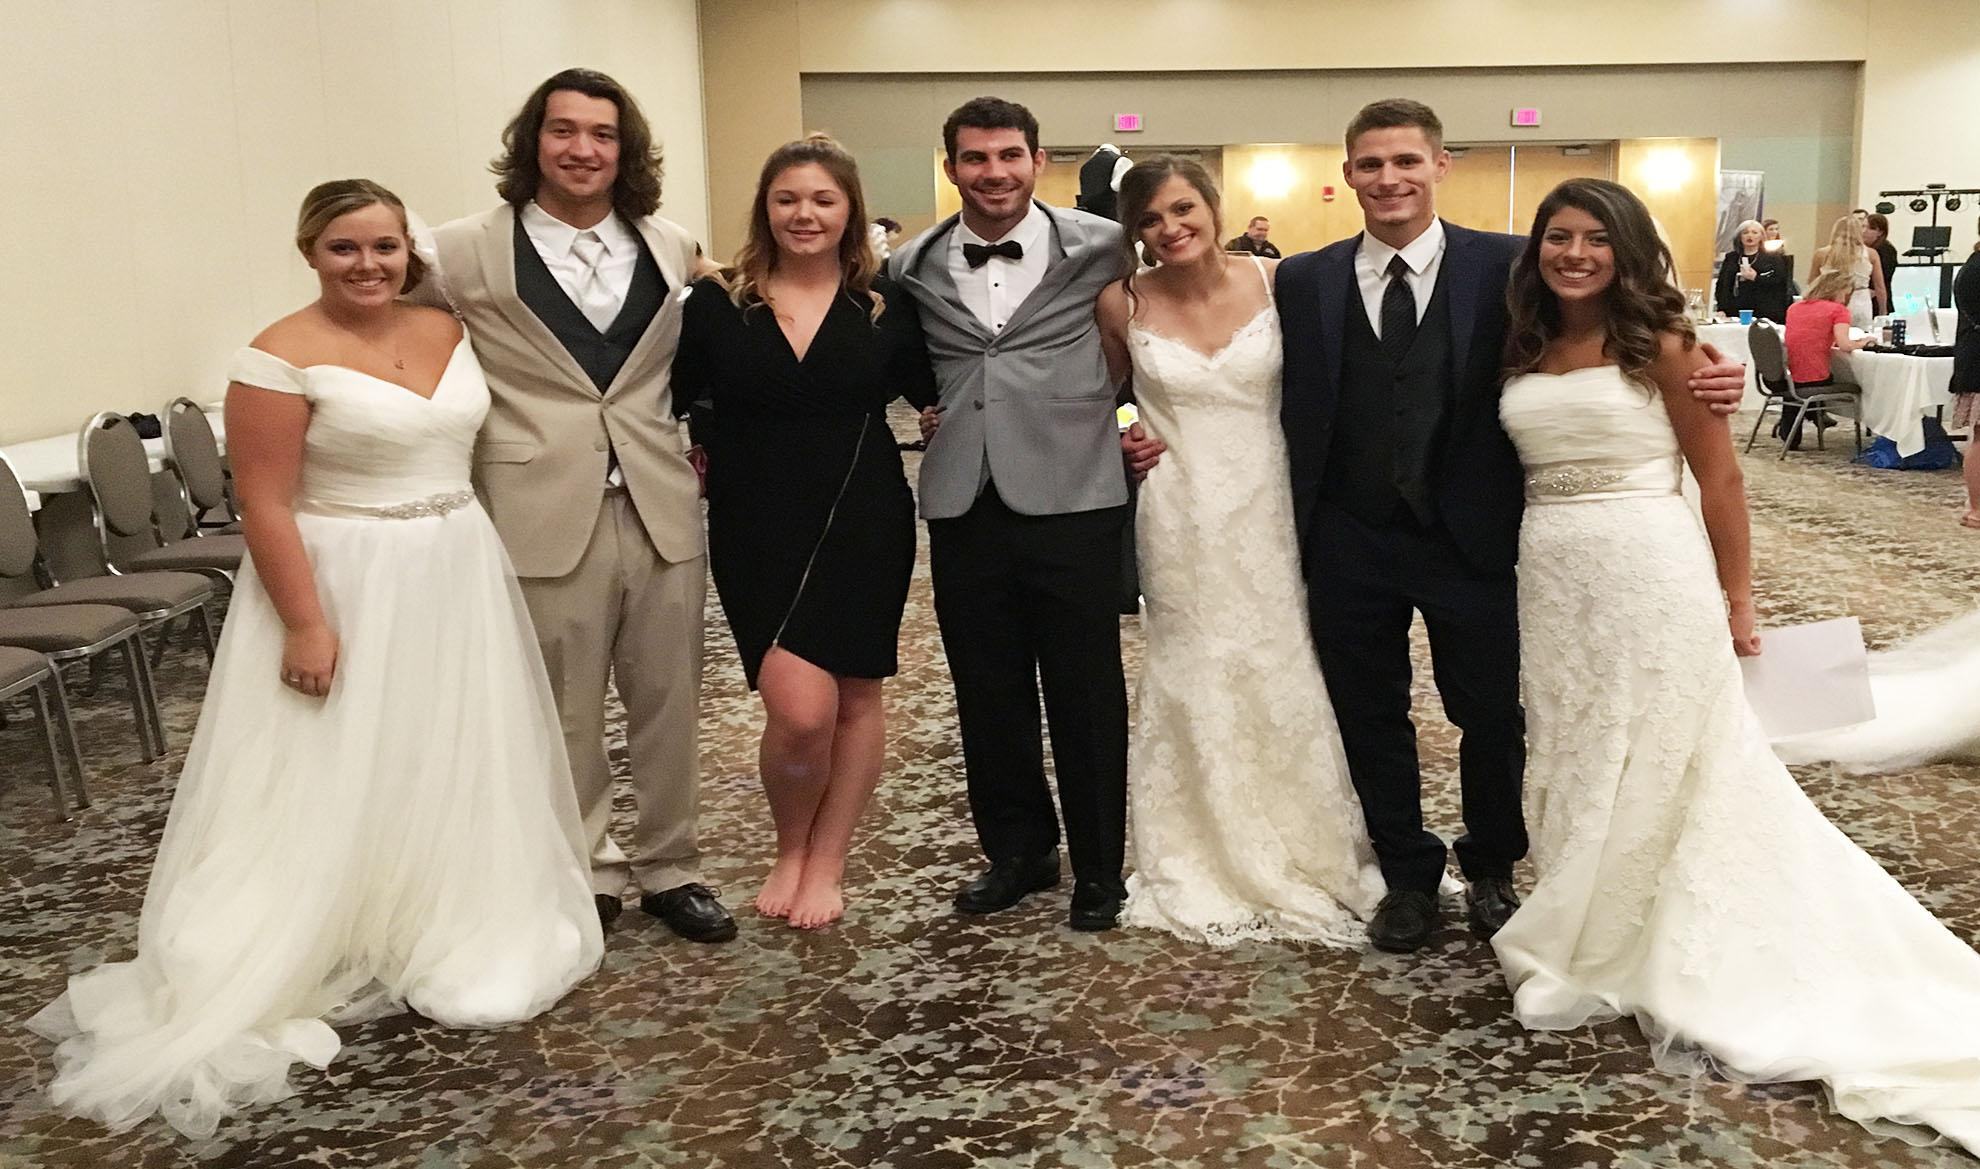 Platteville men and women show off a variety of designer tuxedos and wedding dresses in Zazou's Bridal show.